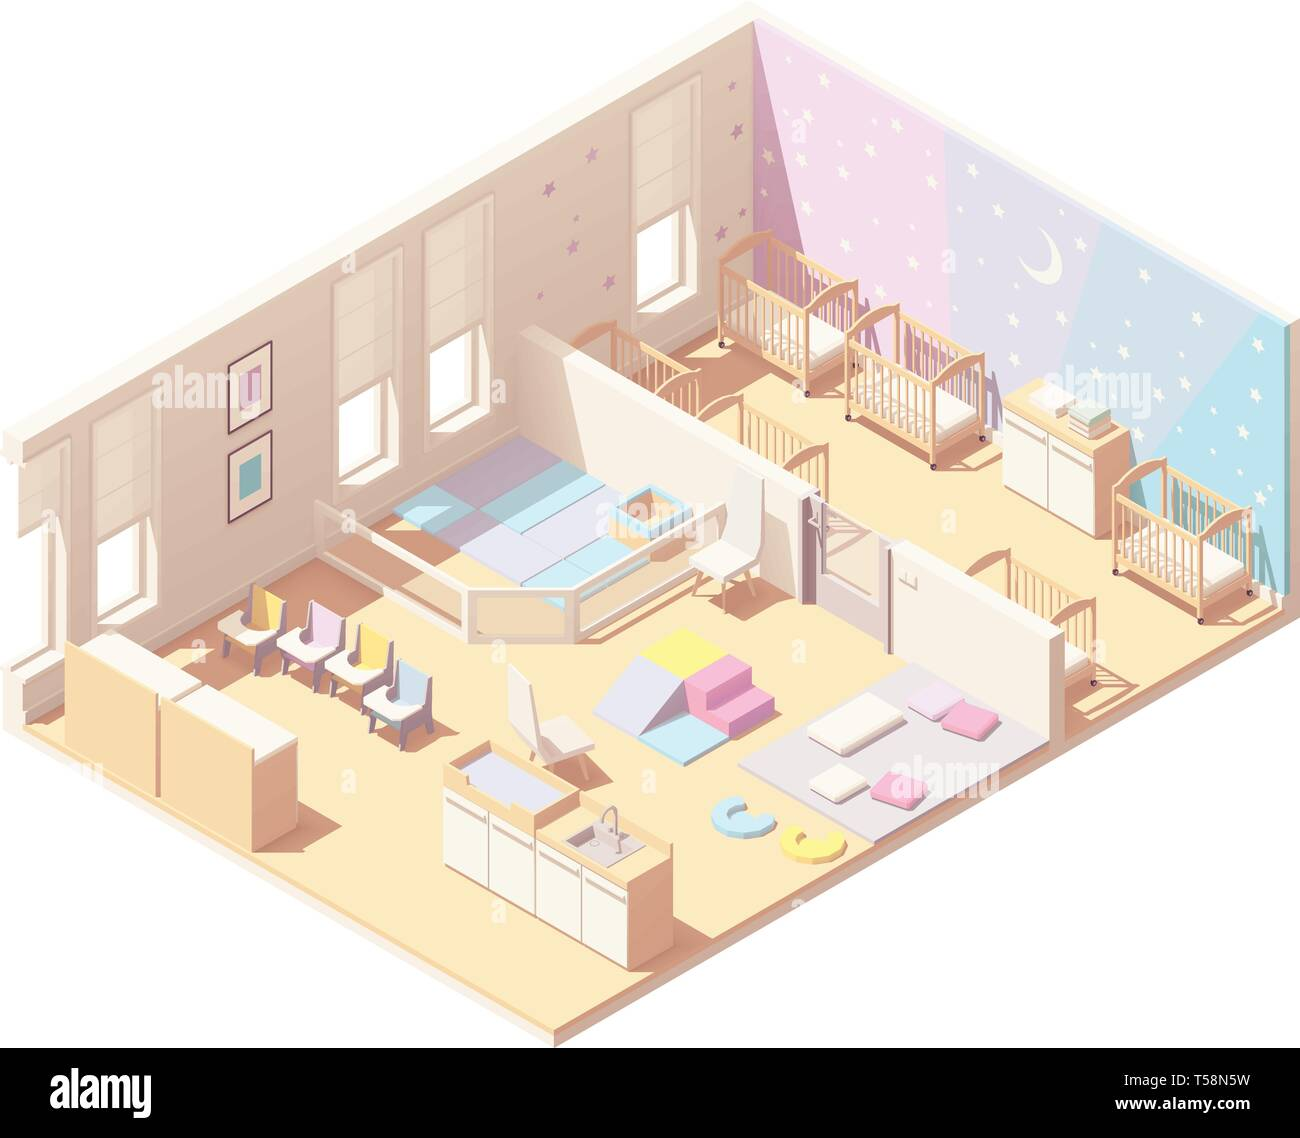 Isometric infant daycare classroom - Stock Vector